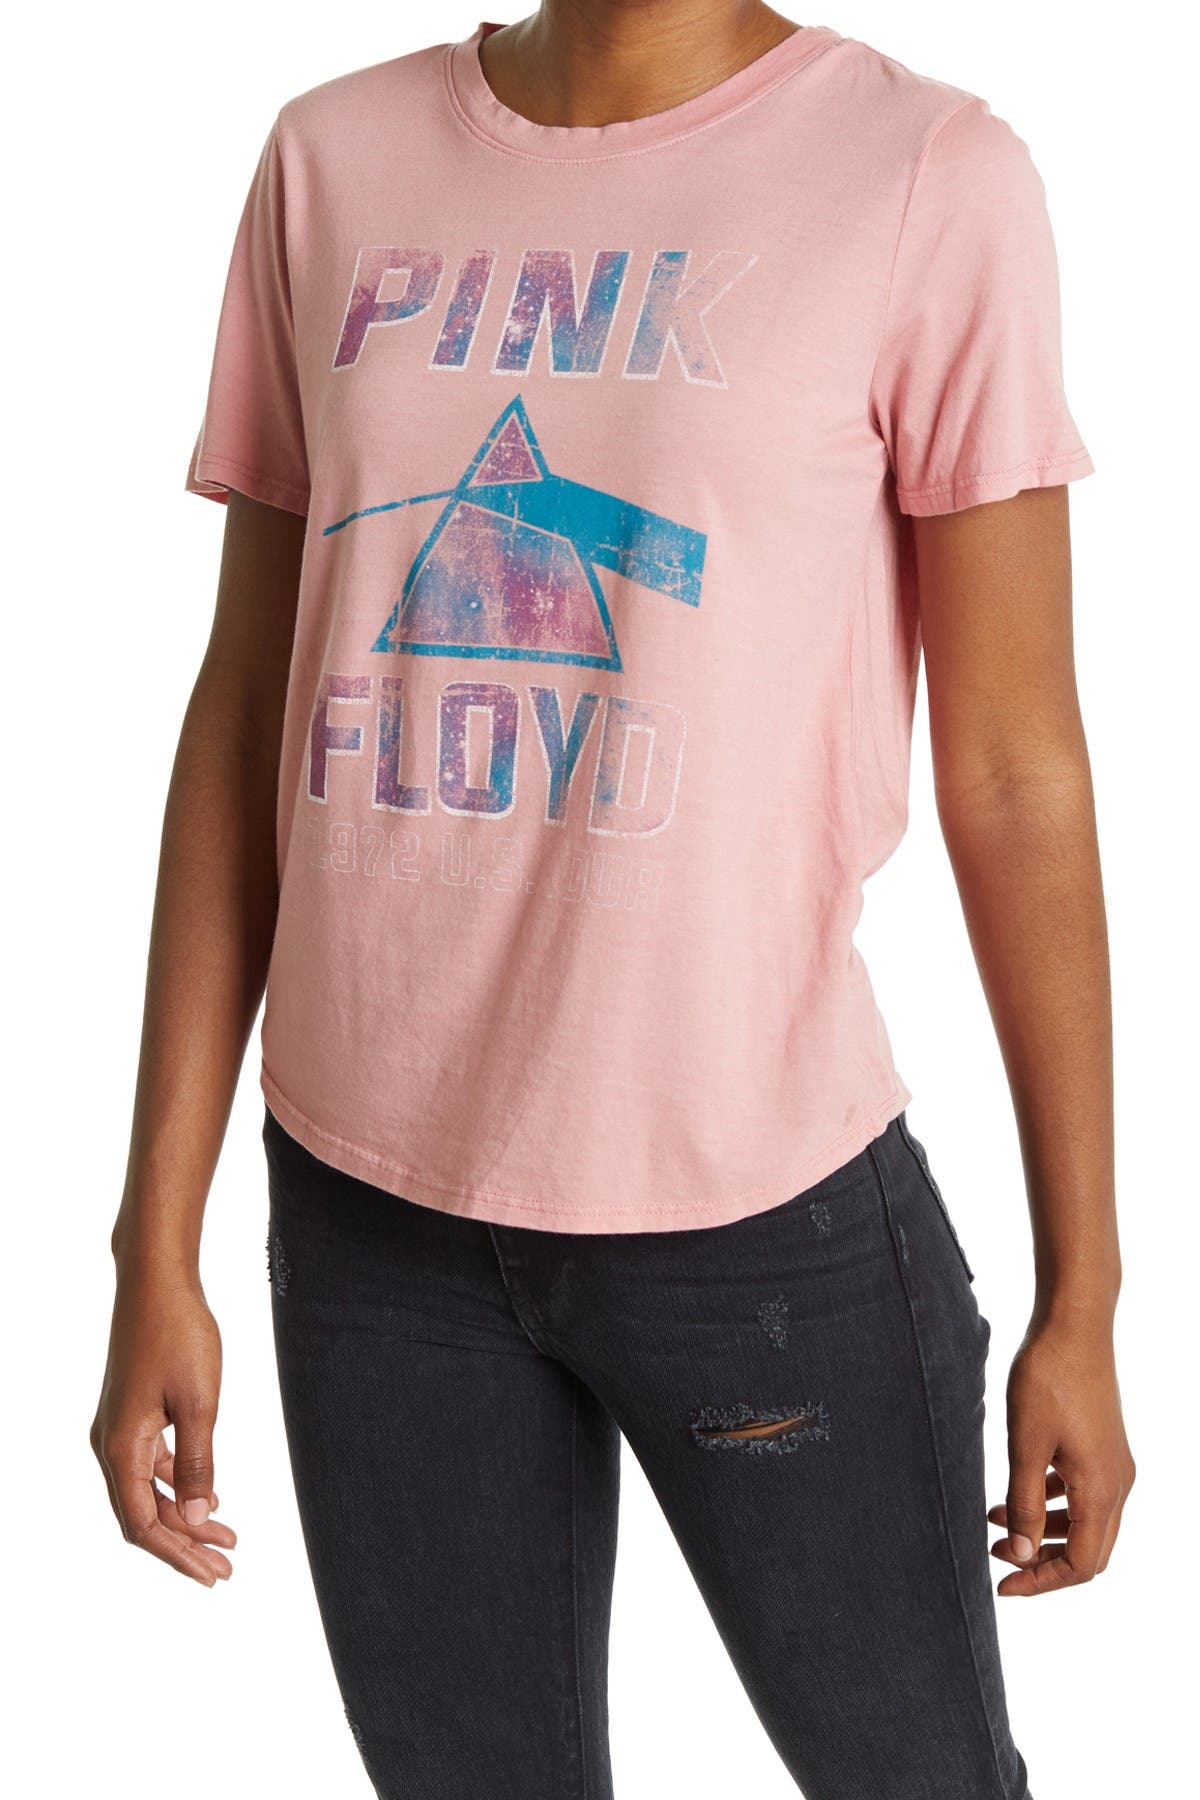 Image of Knit Riot Pink Floyd Tee